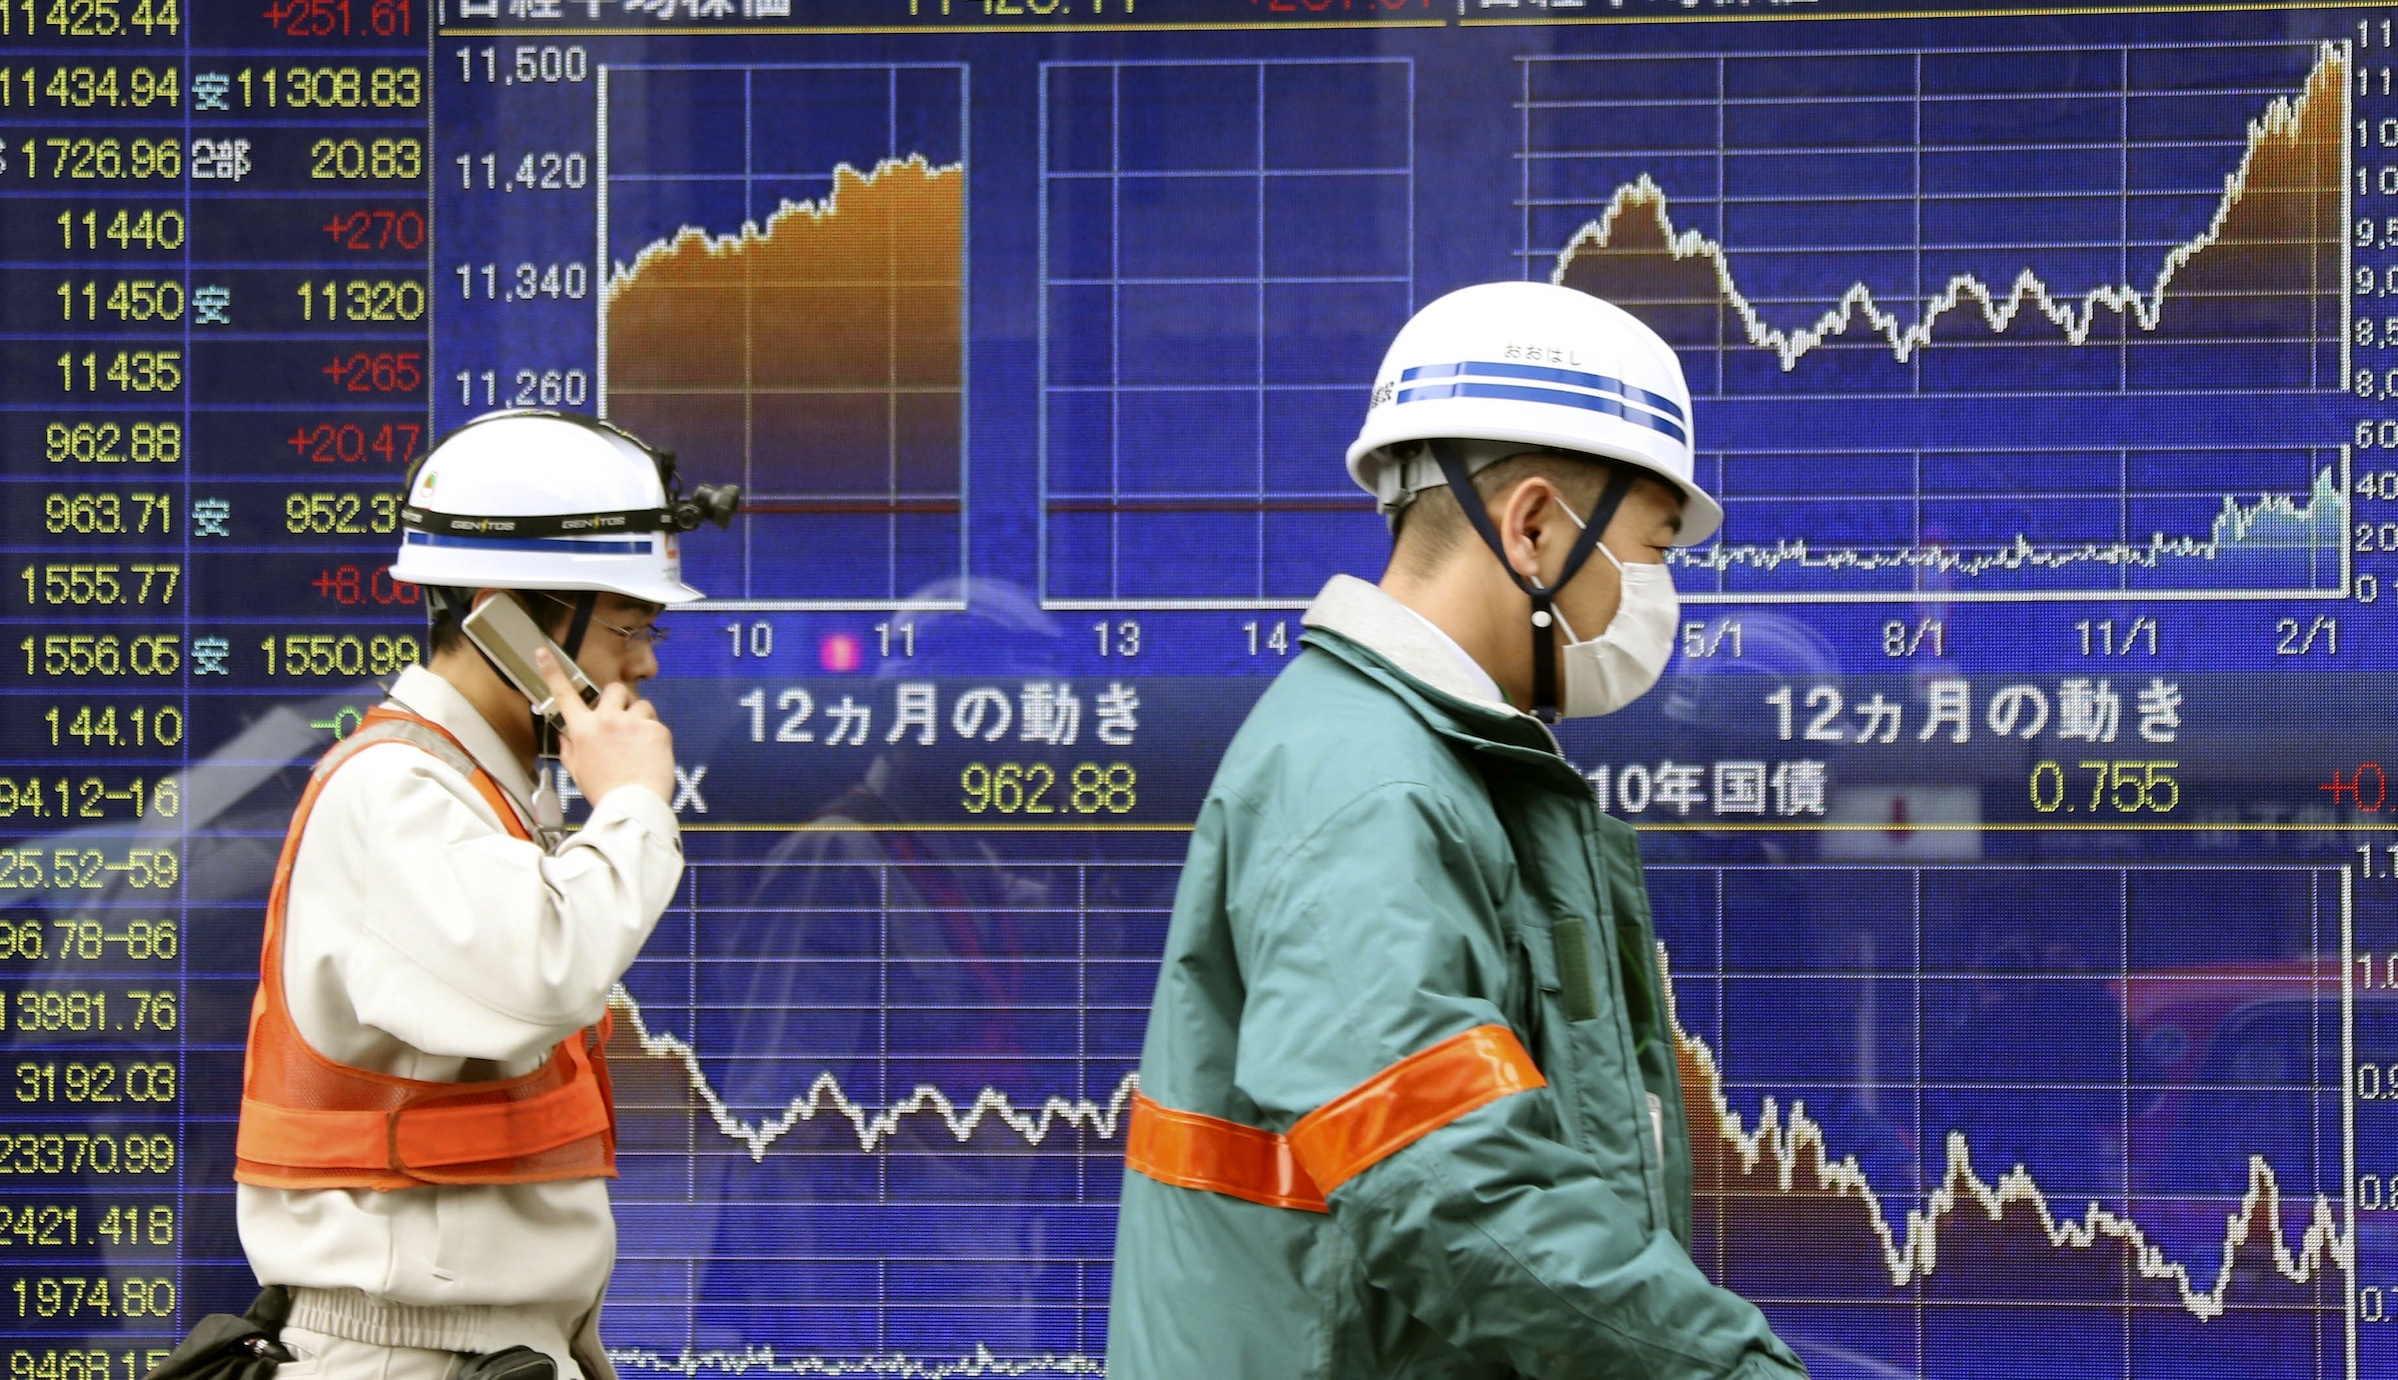 Workers walk by an electronic stock board of a securities firm in Tokyo, Monday,  Feb. 18, 2013. Japan's benchmark stock index jumped Monday after Group of 20 finance officials avoided directly criticizing Prime Minister Shinzo Abe's new government for trying to force down the yen. Other Asian stock markets were mixed. (AP Photo/Koji Sasahara)